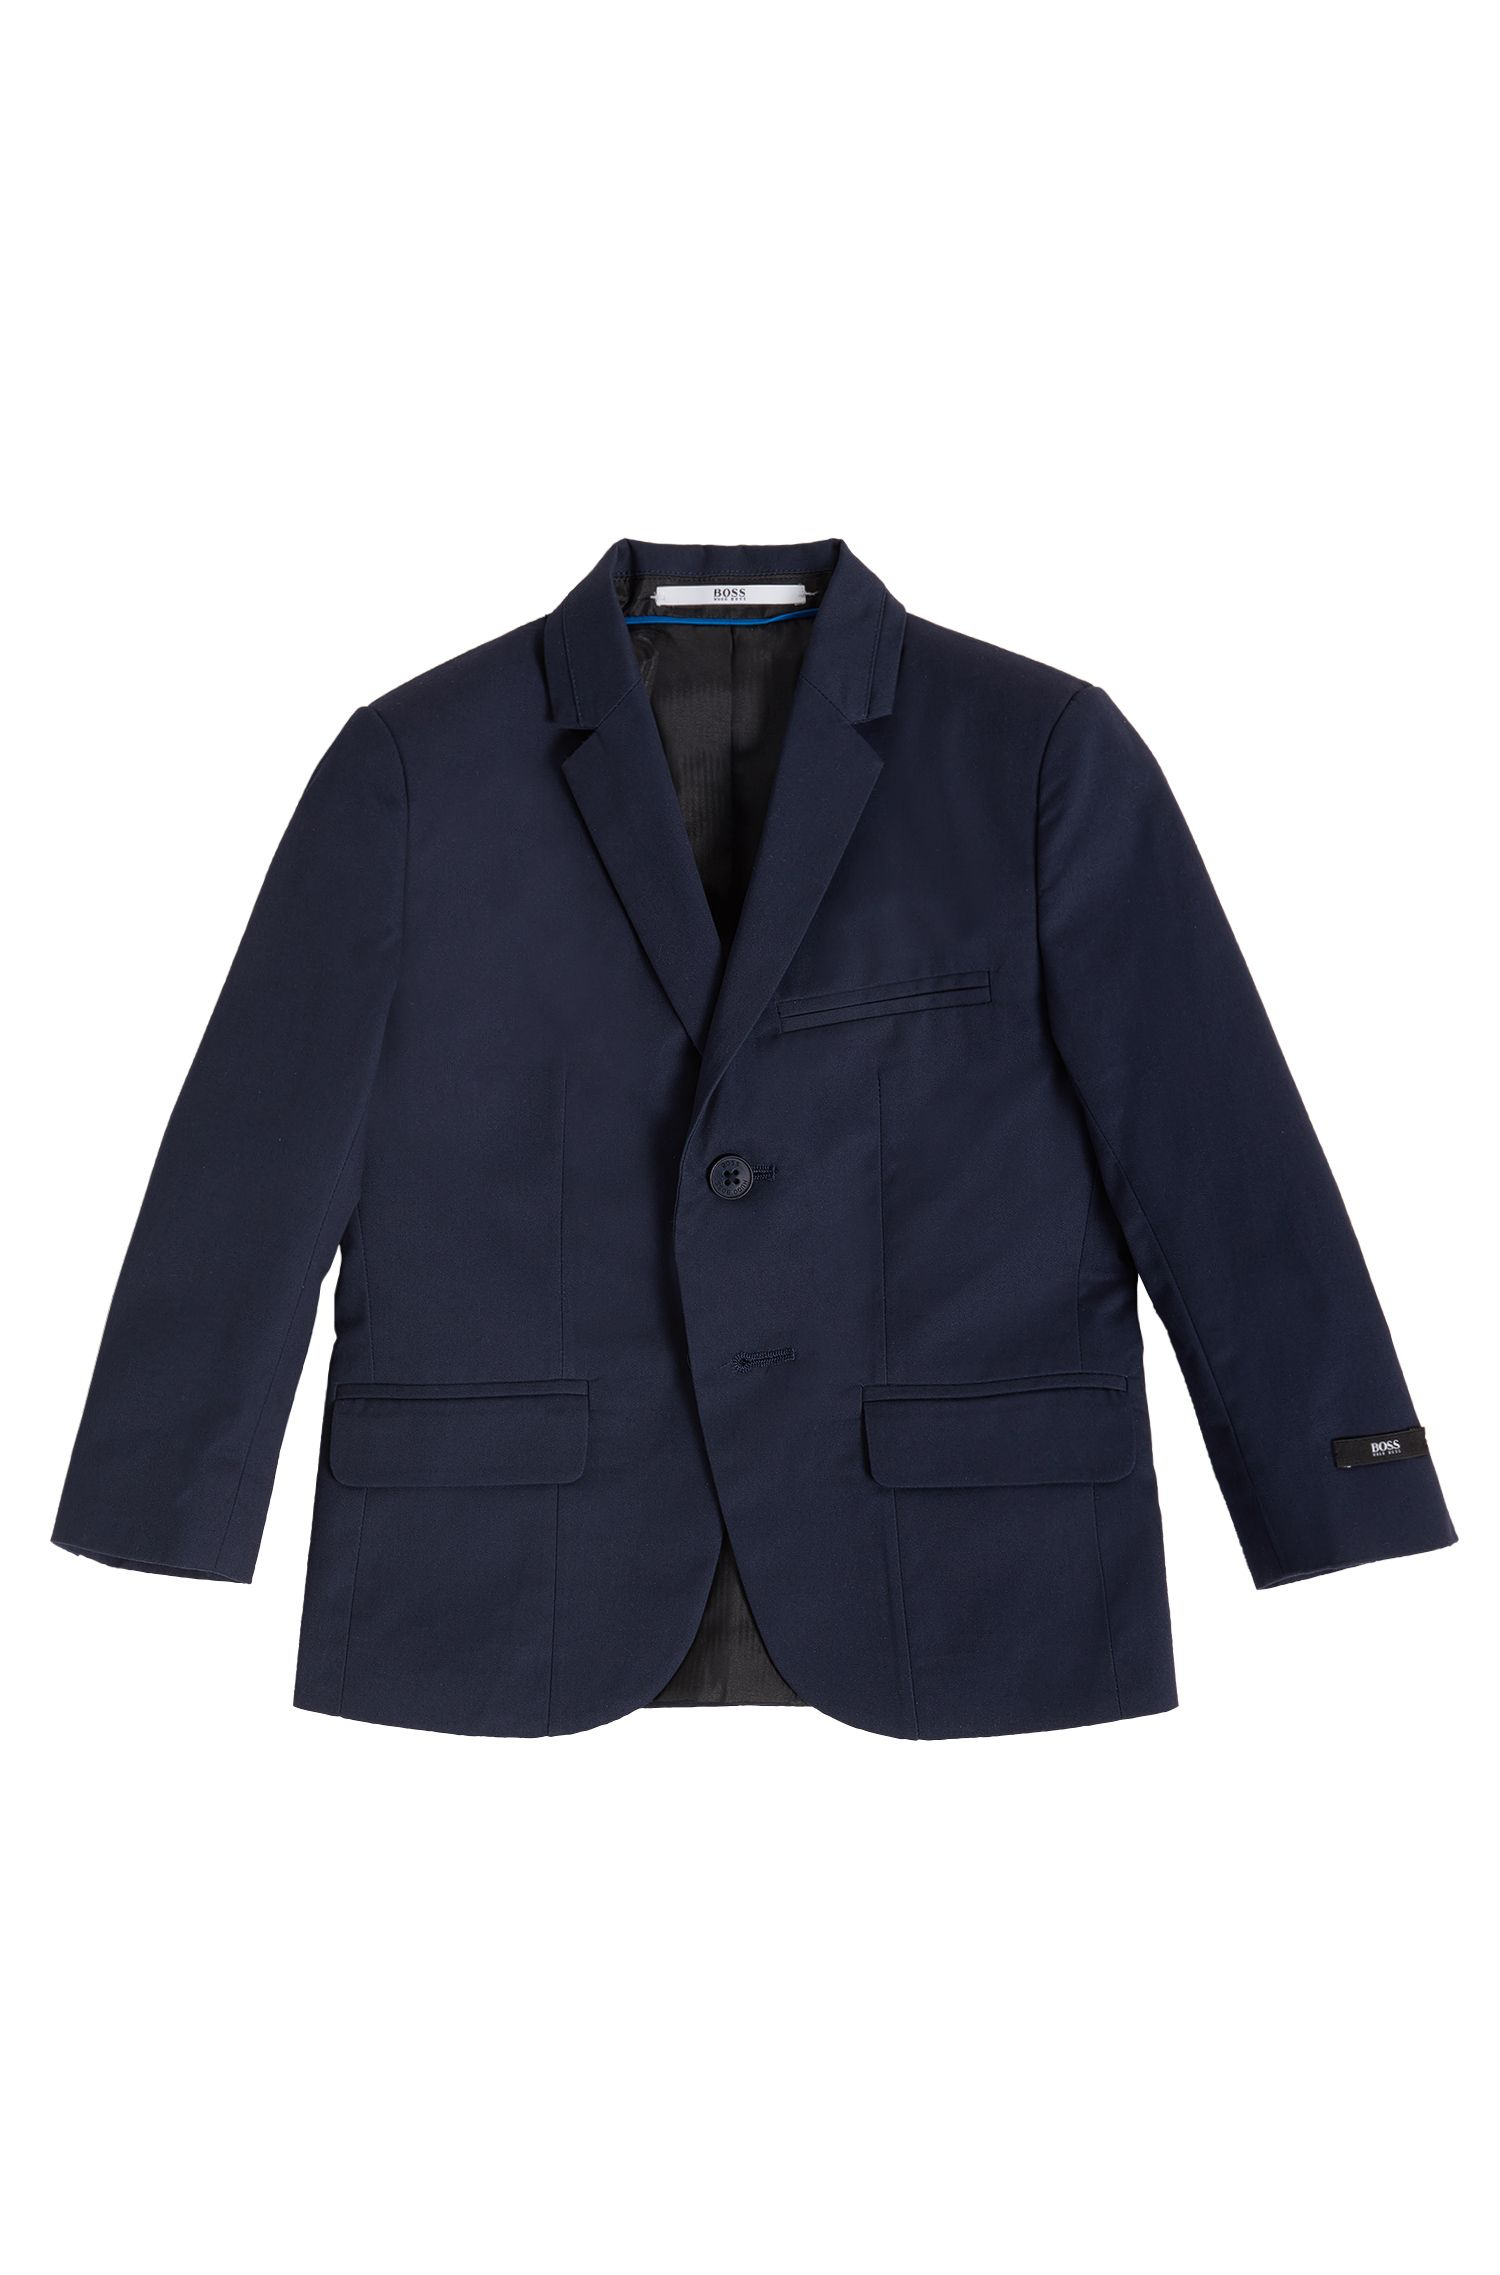 Veste de costume Regular Fit pour enfant, en twill de coton